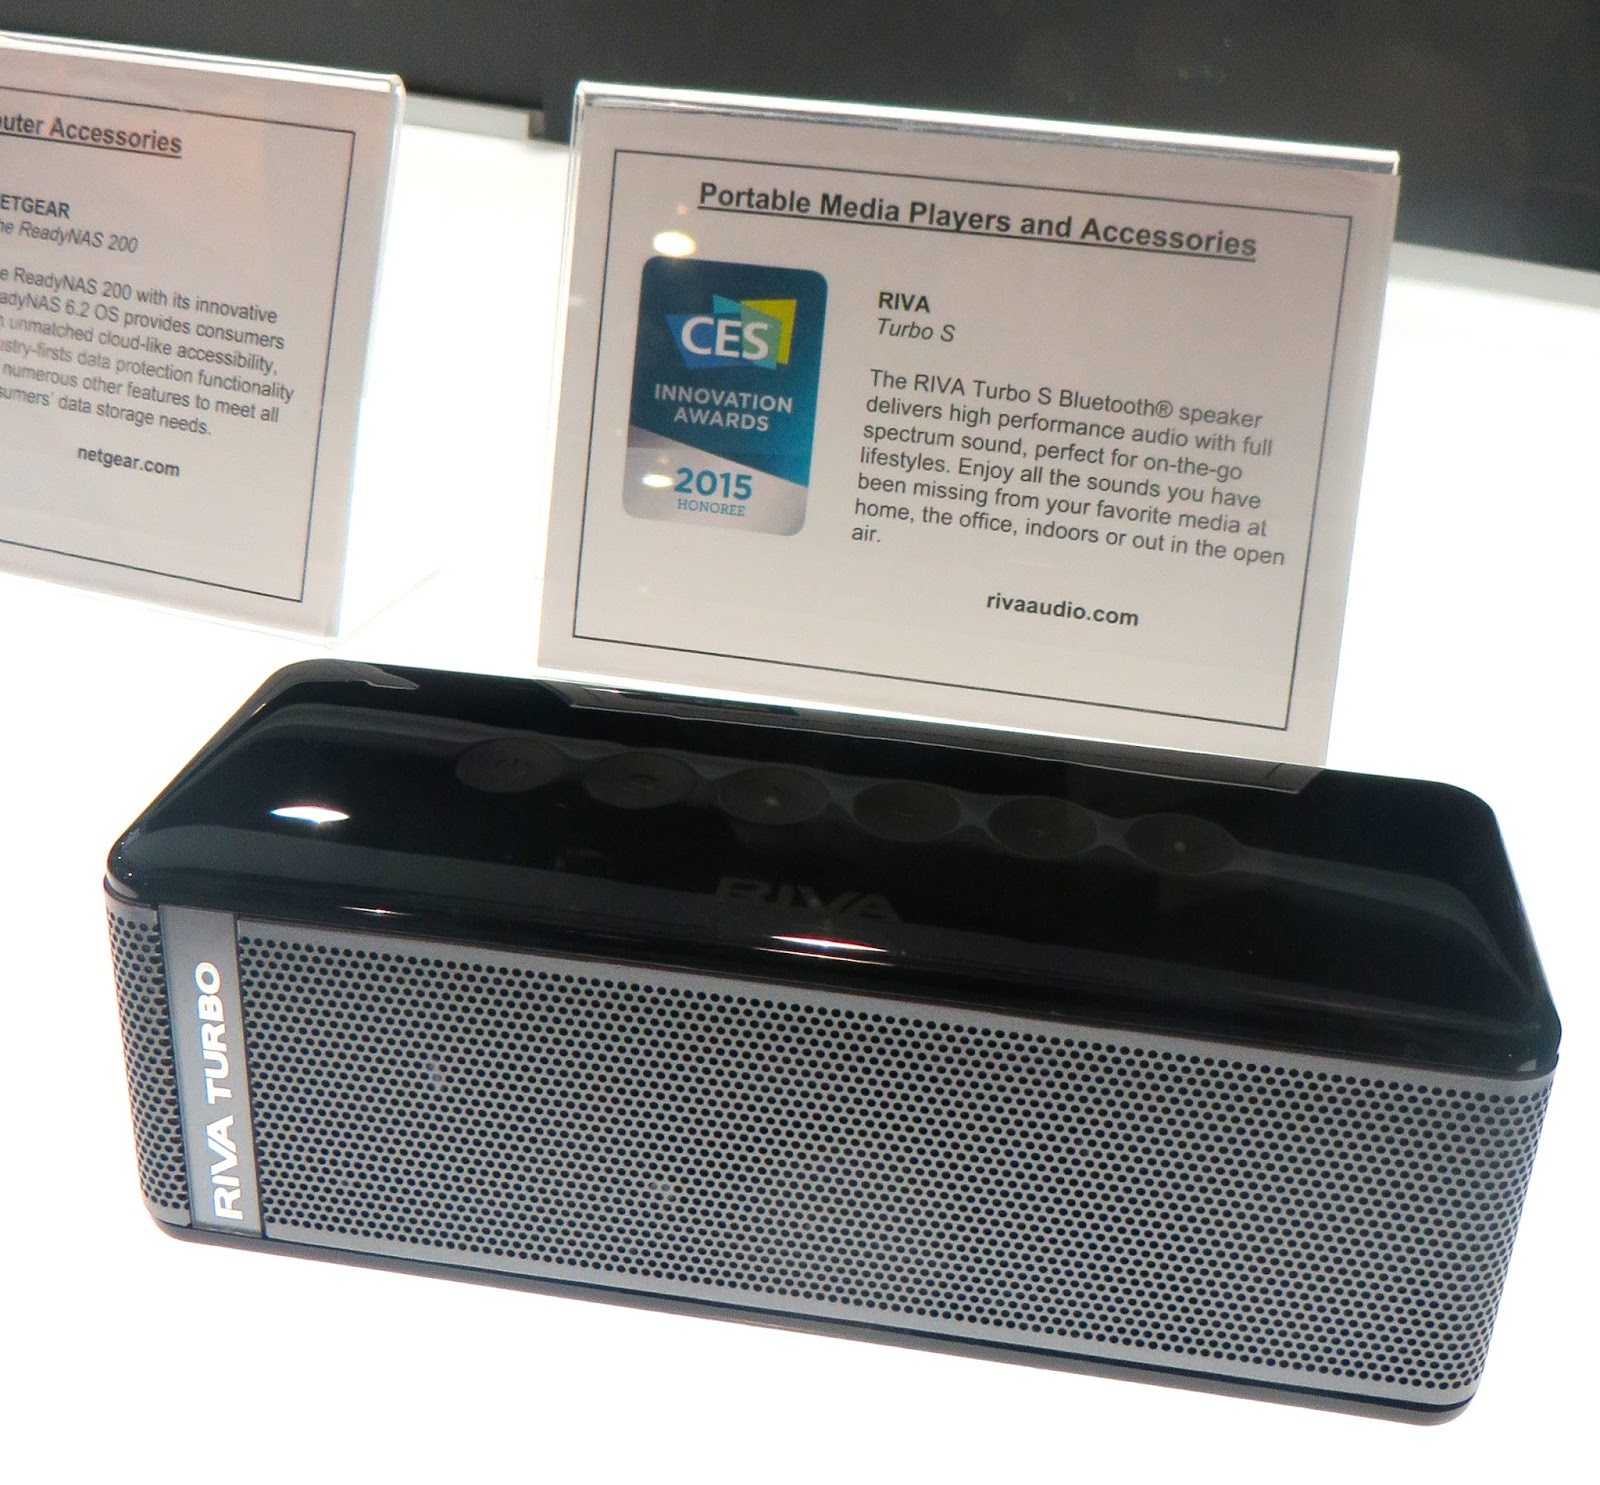 Lyra Mag Ces 2015 Innovation Award Nominee Highlights Part 2